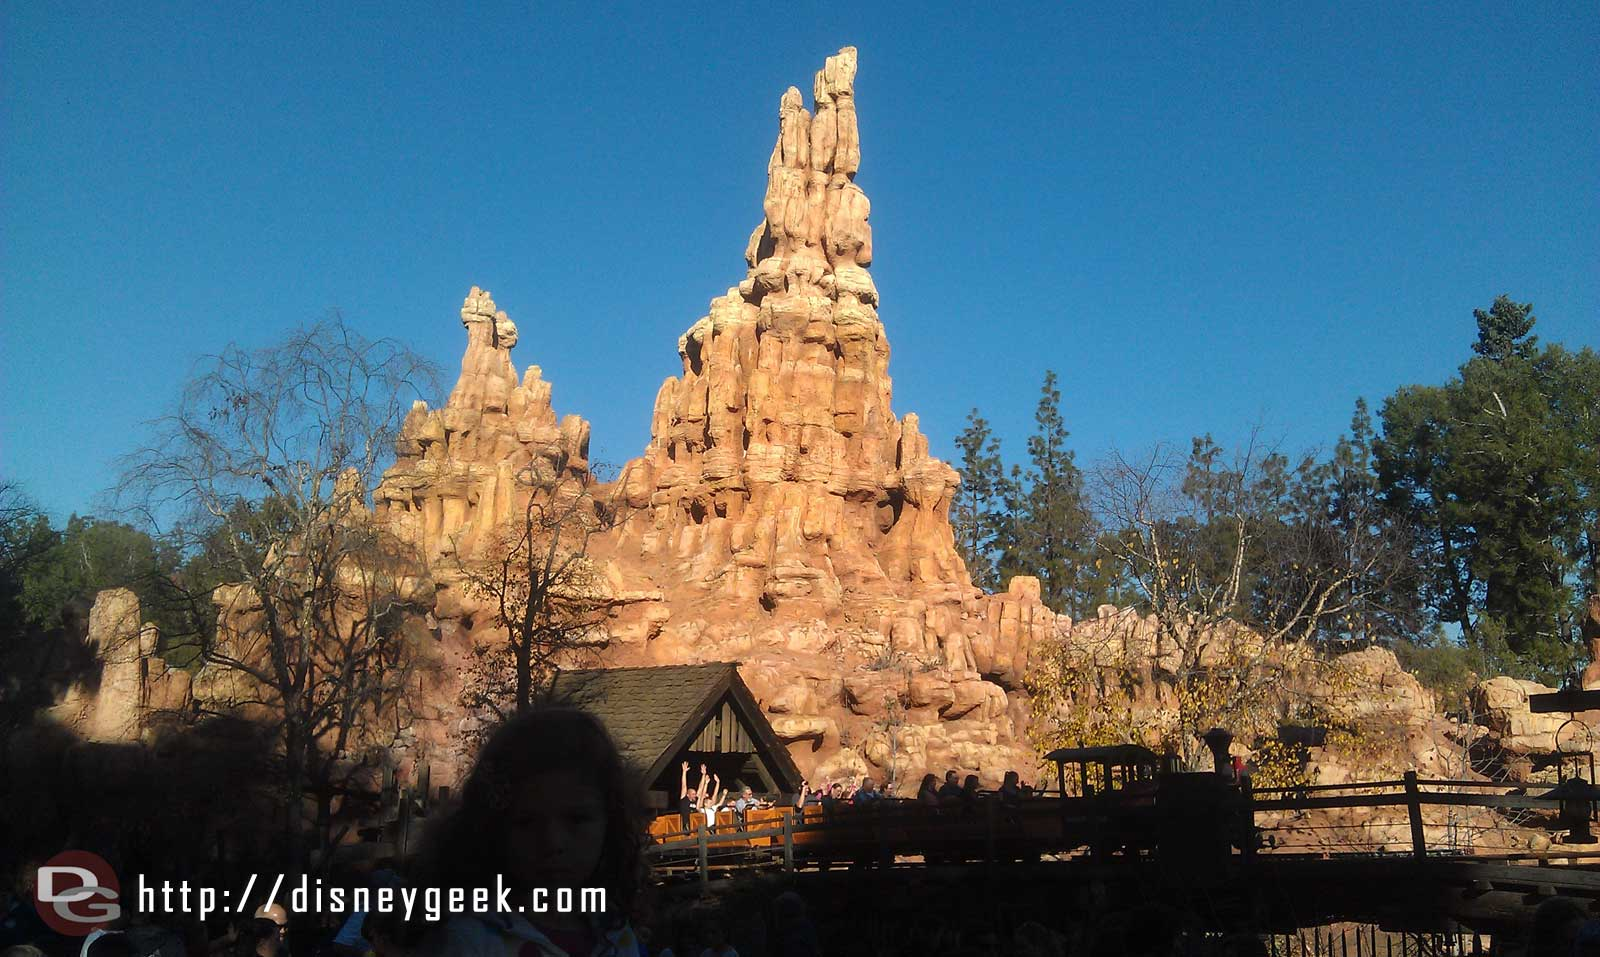 Last weekend to experience Big Thunder before it closes for several months of work